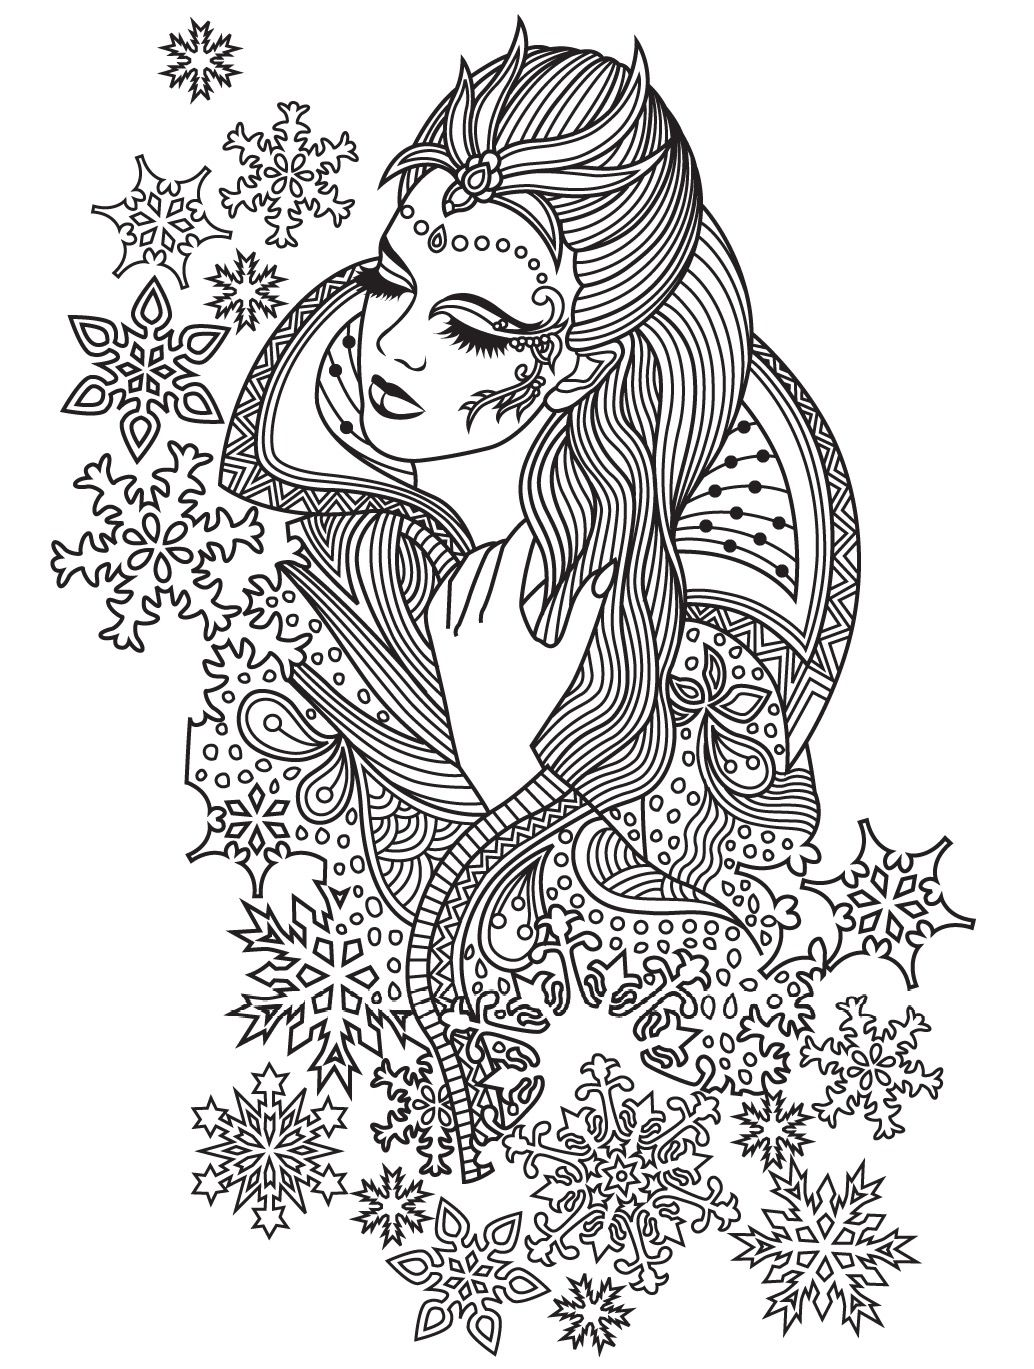 fairytales colorish coloring book app for adults by goodsofttech - Coloring Book App For Adults